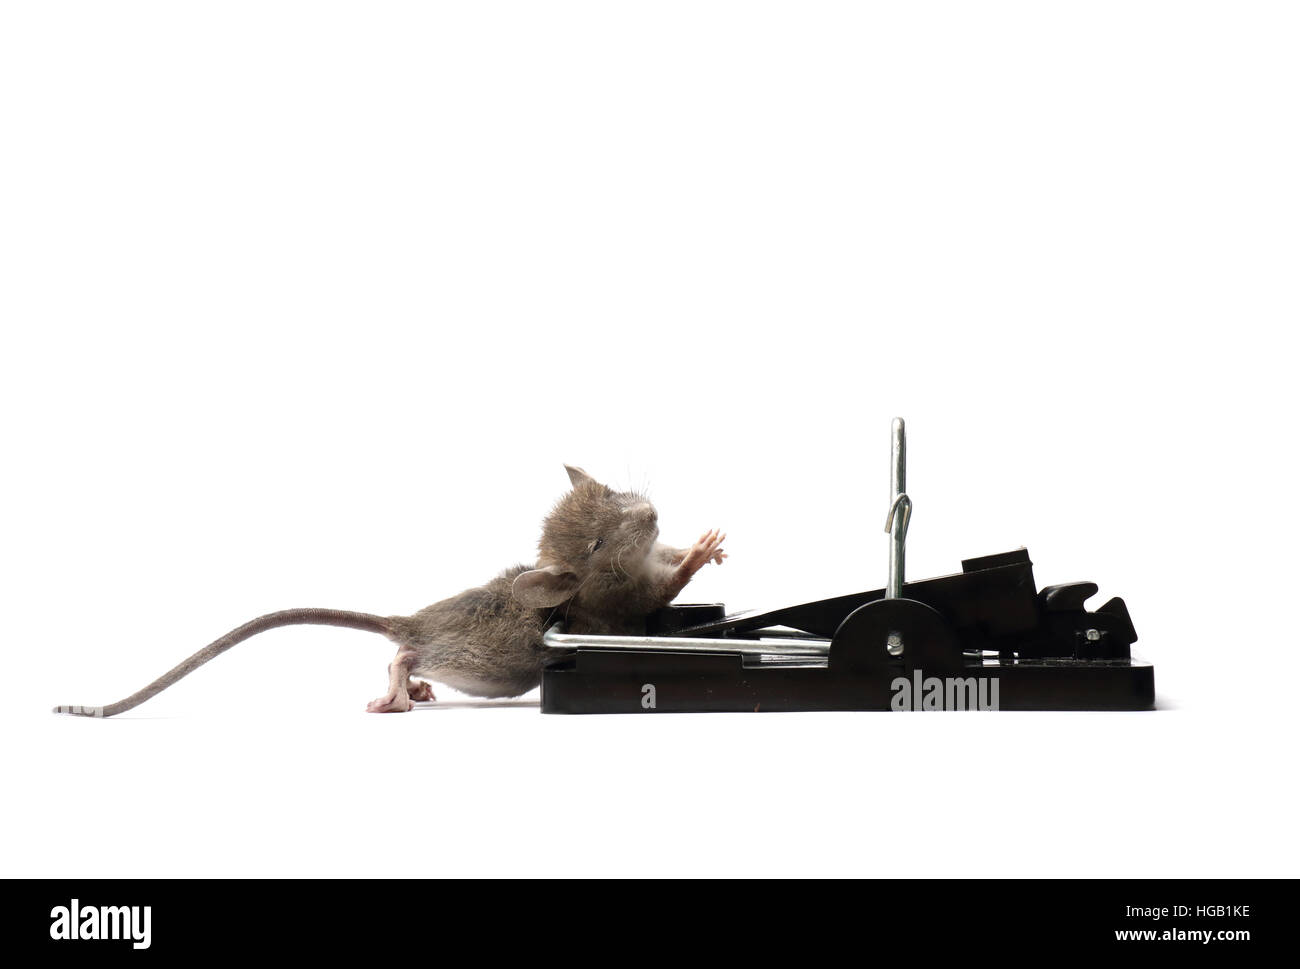 House mouse, mus musculus, caught and killed in a spring trap. Photographed on a white background and prepared for Stock Photo